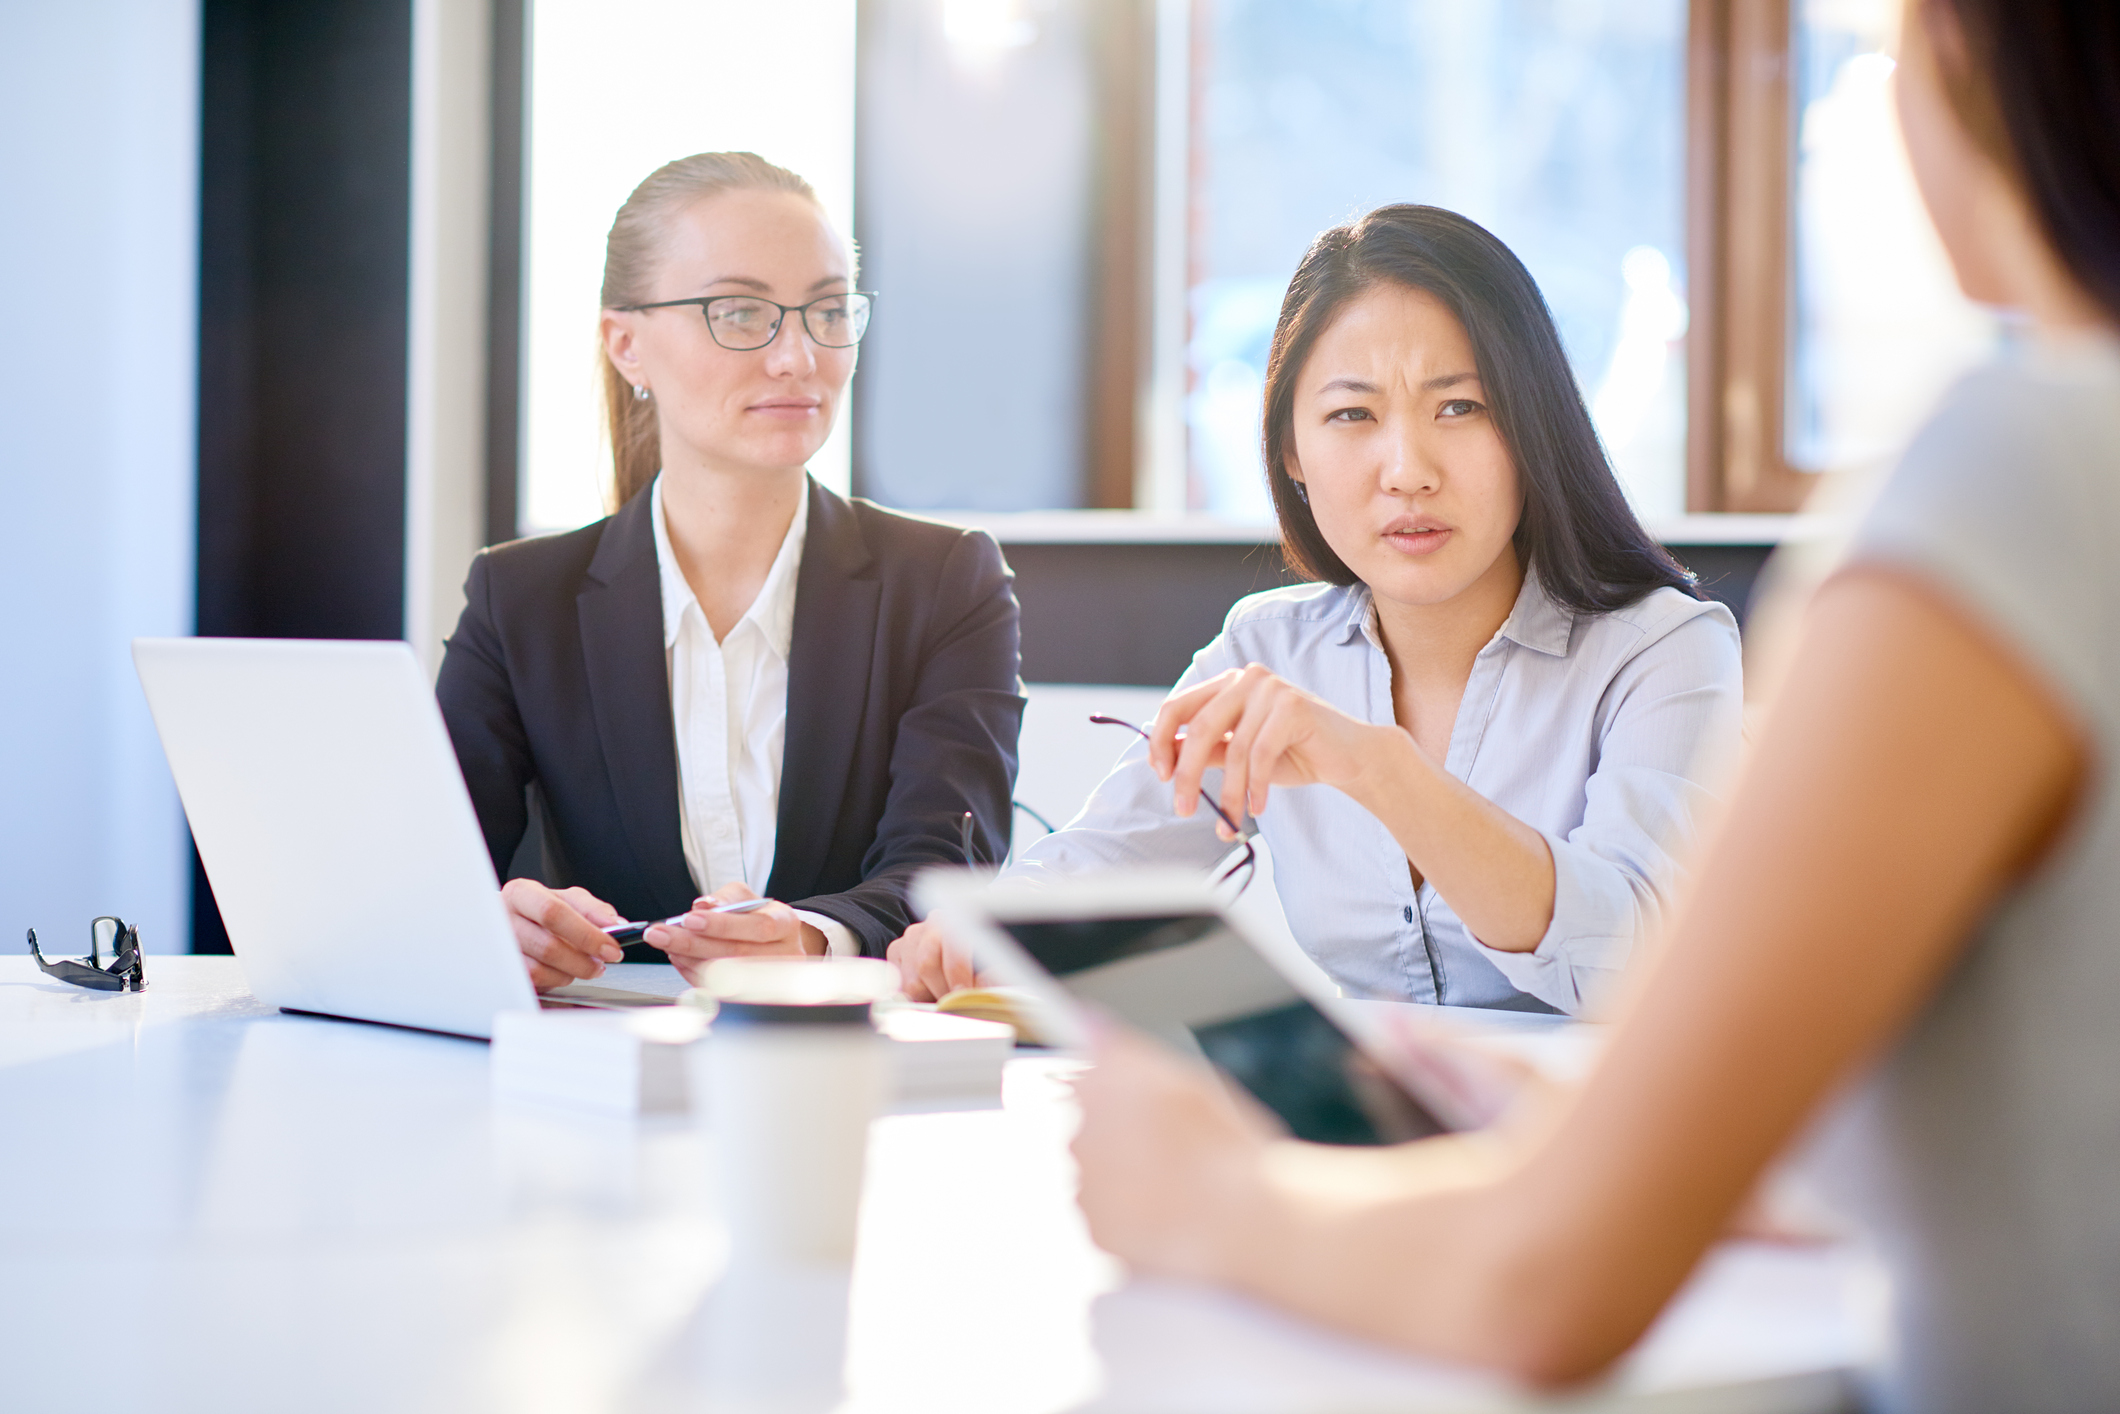 7 Tips for Finding Honest and Trusted Employees